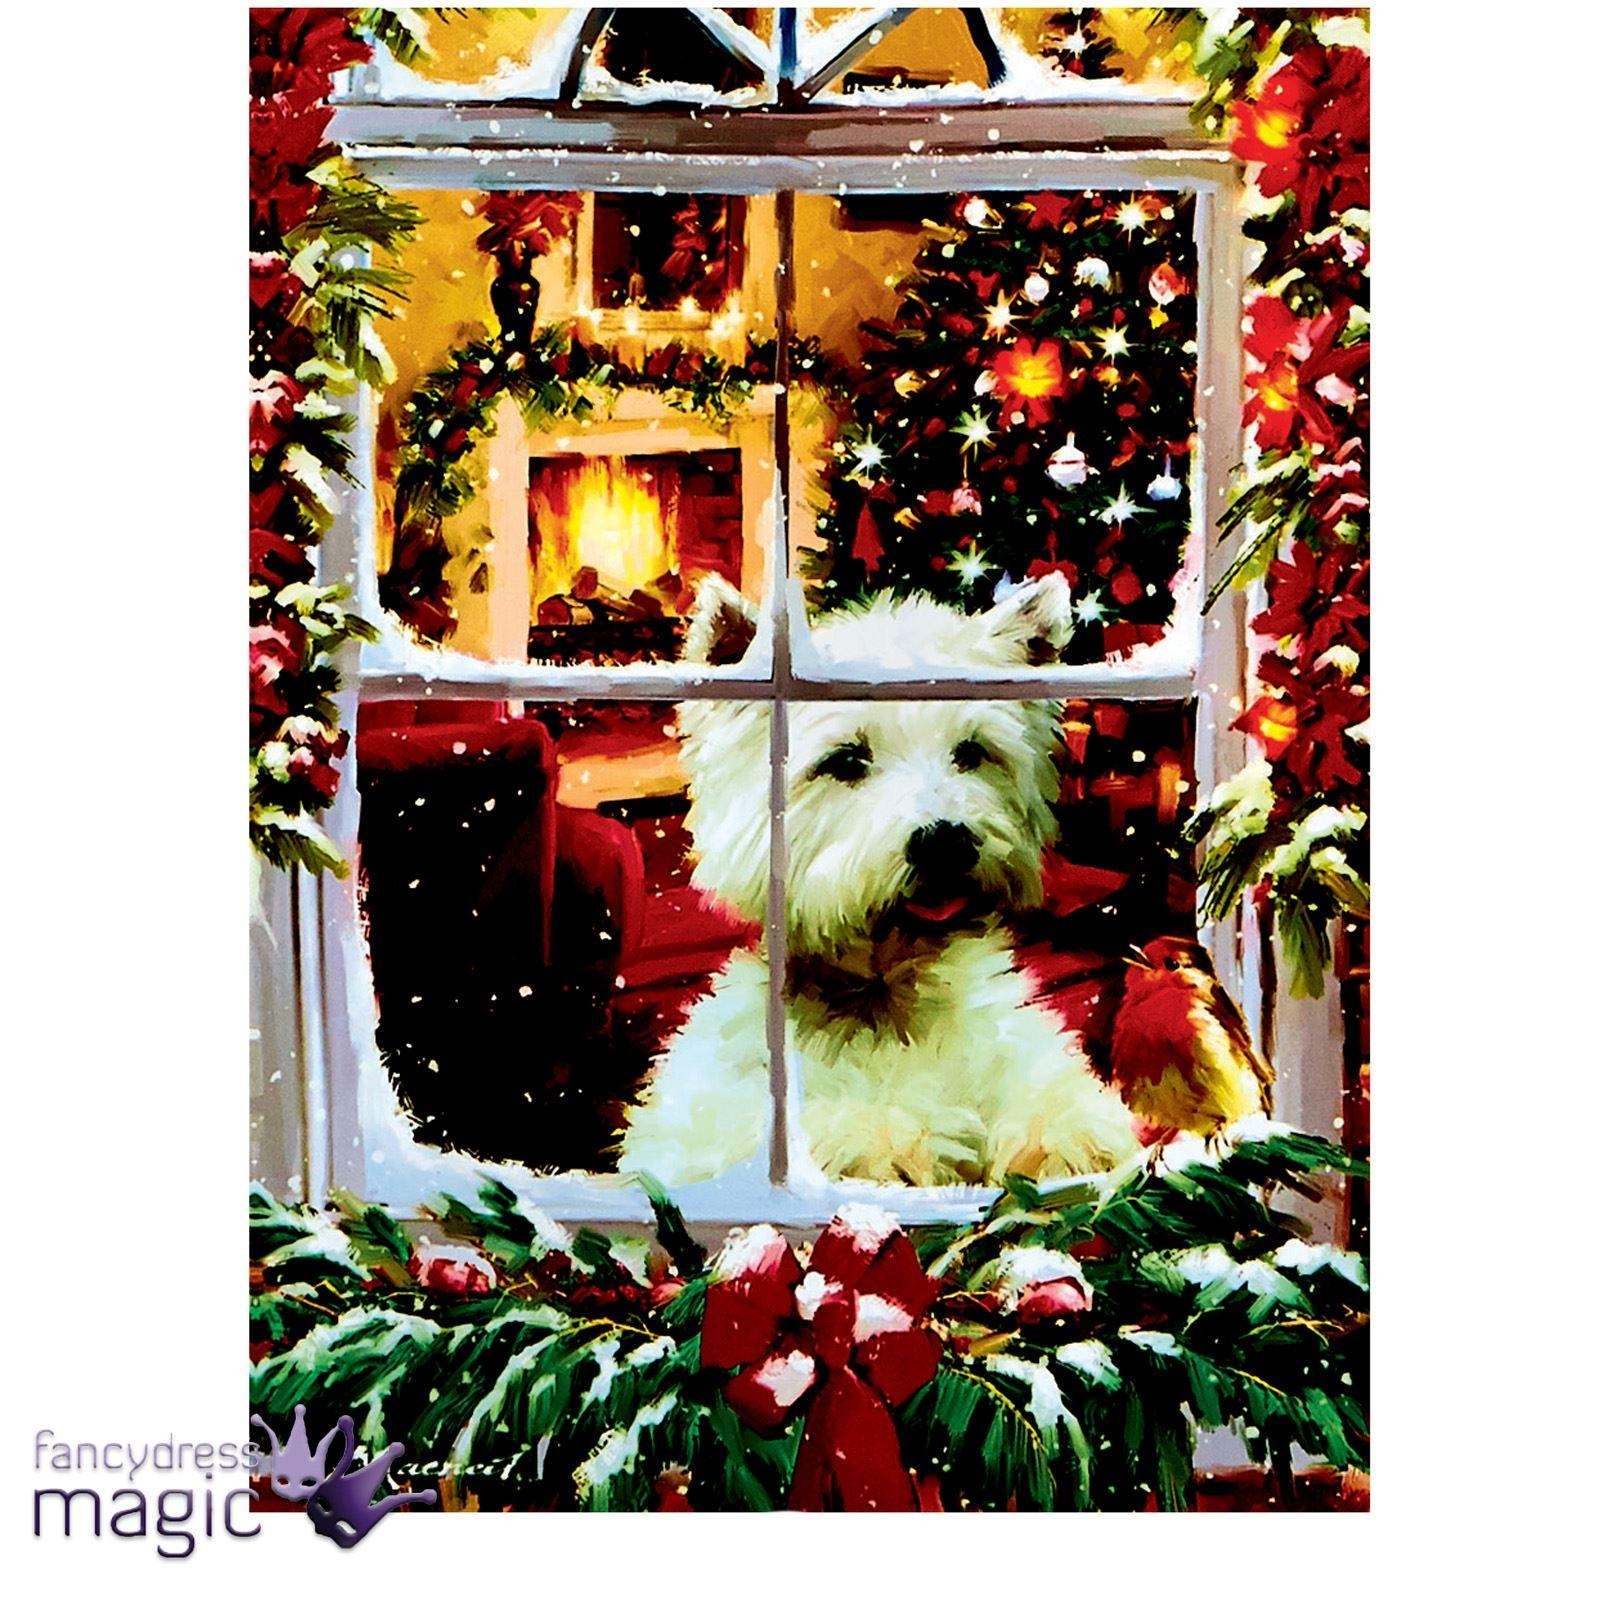 40 X 30Cm Christmas Animal Scene Led Canvas Battery Operated Cat with Westie Wall Art